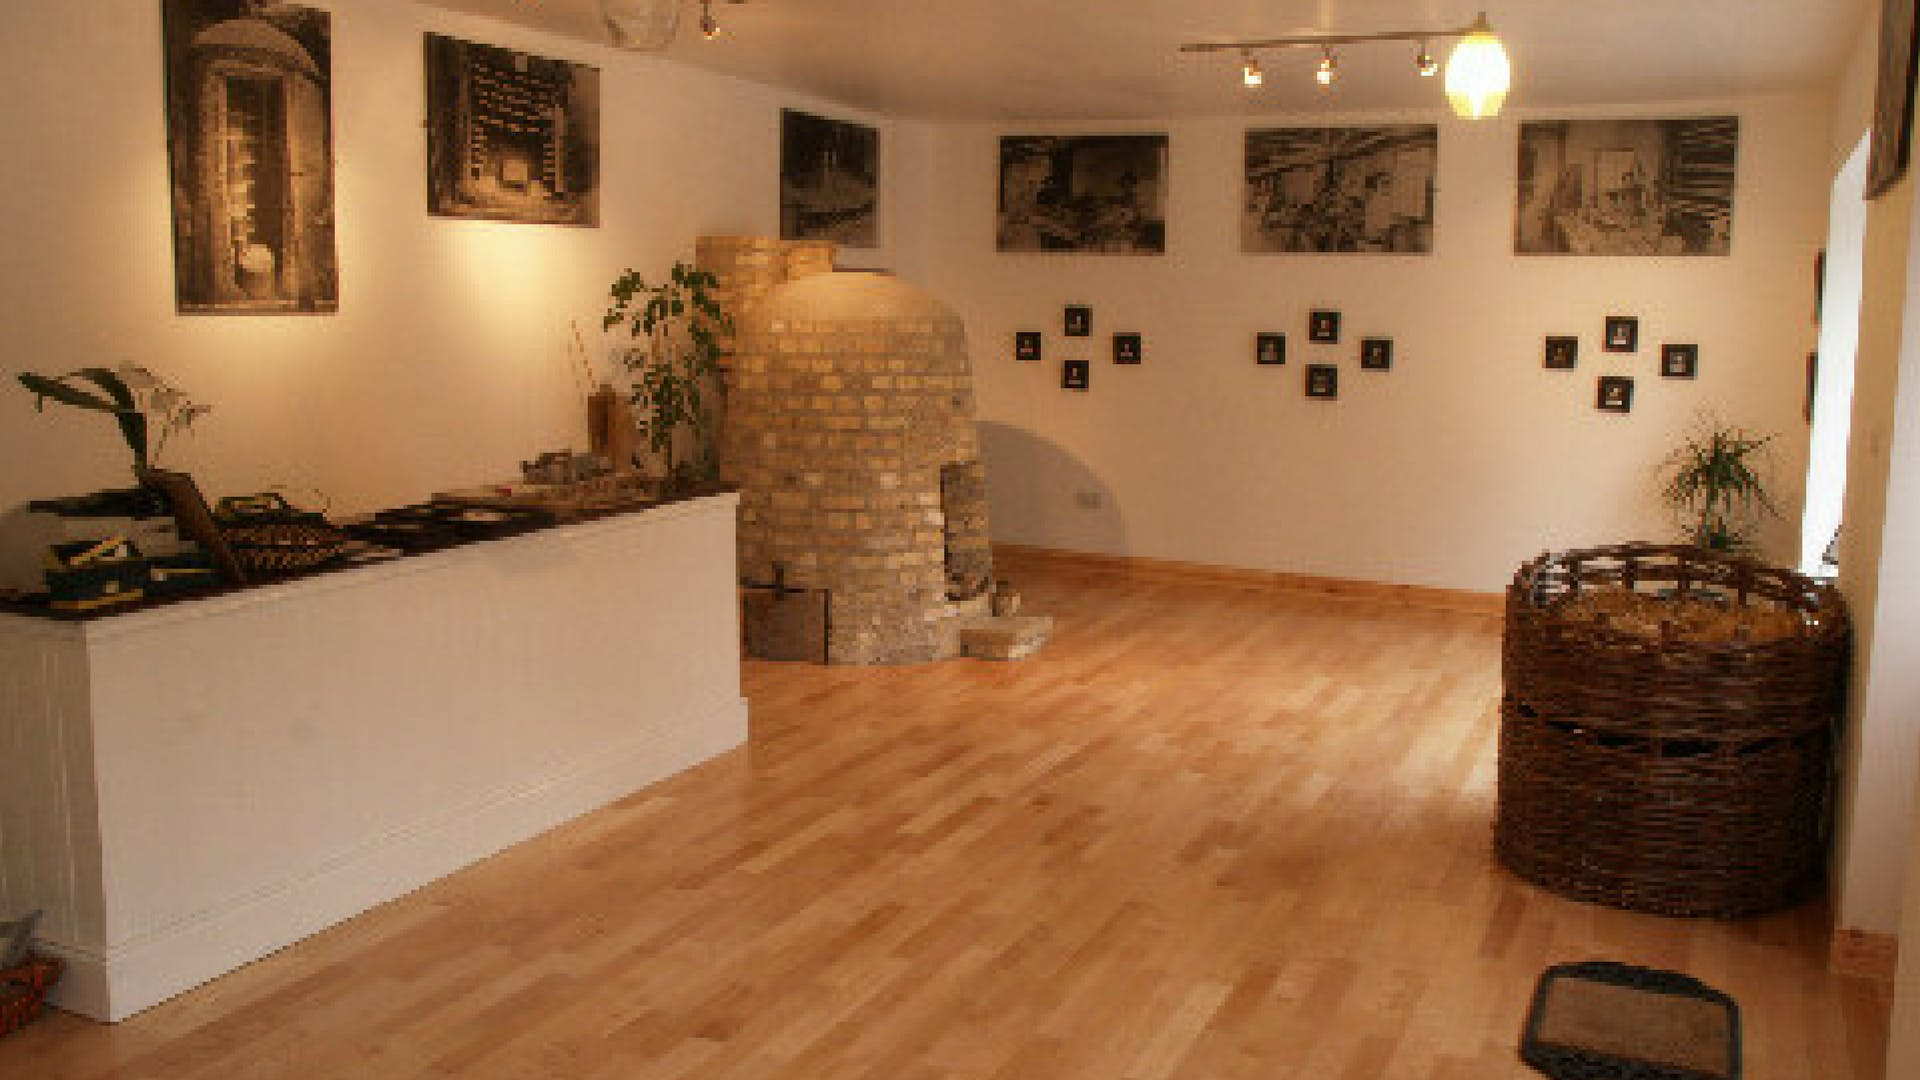 Visit Knockcroghery Clay Pipe Museum during your stay at Gleesons Restaurant & Rooms, Roscommon